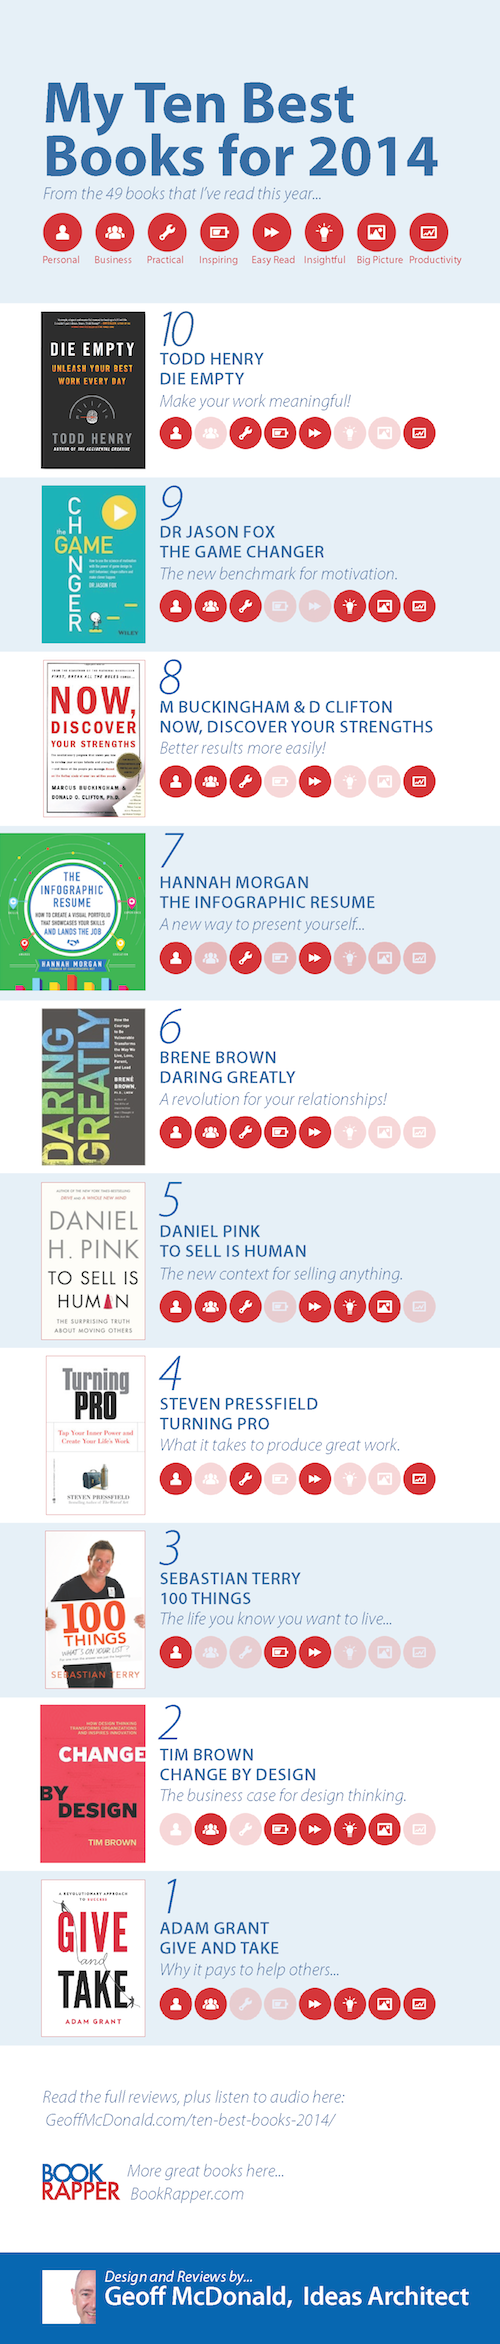 Best Books 2014 - Infographic